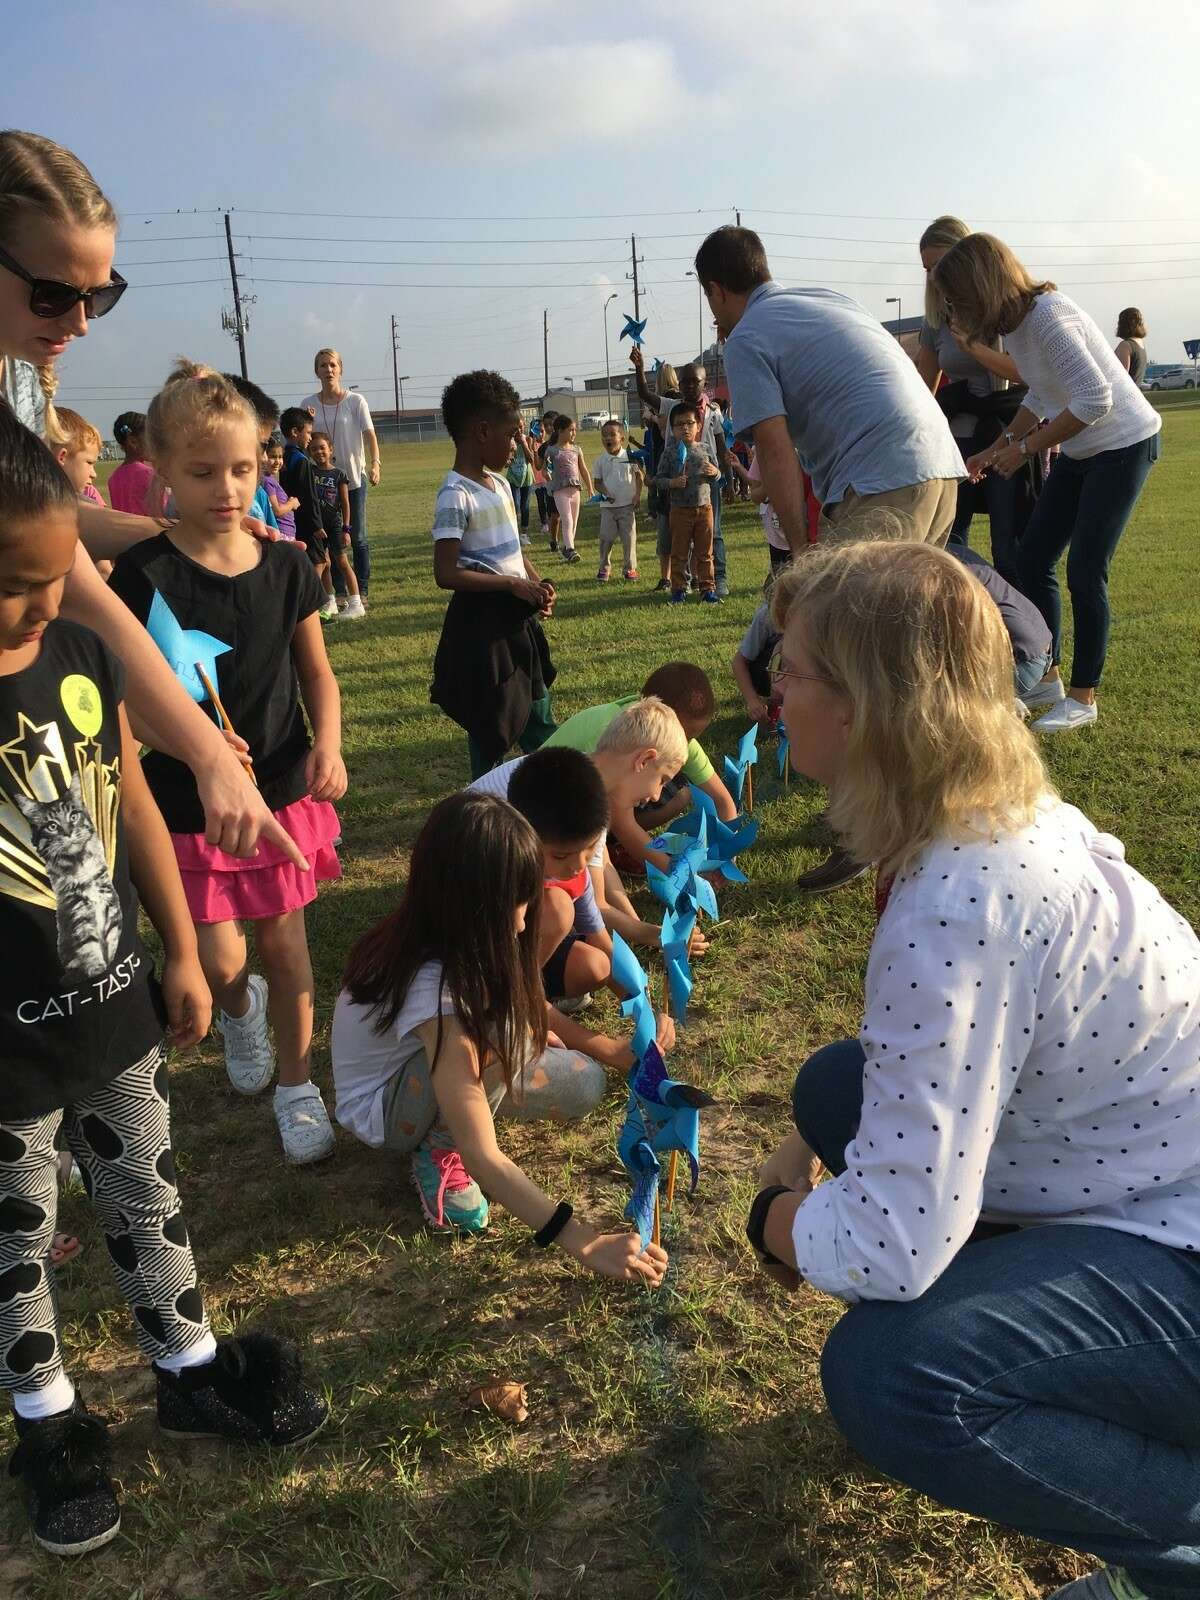 Students and staff at Golbow Elementary started placing pinwheels in the back field at 8:30 a.m. Sept. 21 for their annual